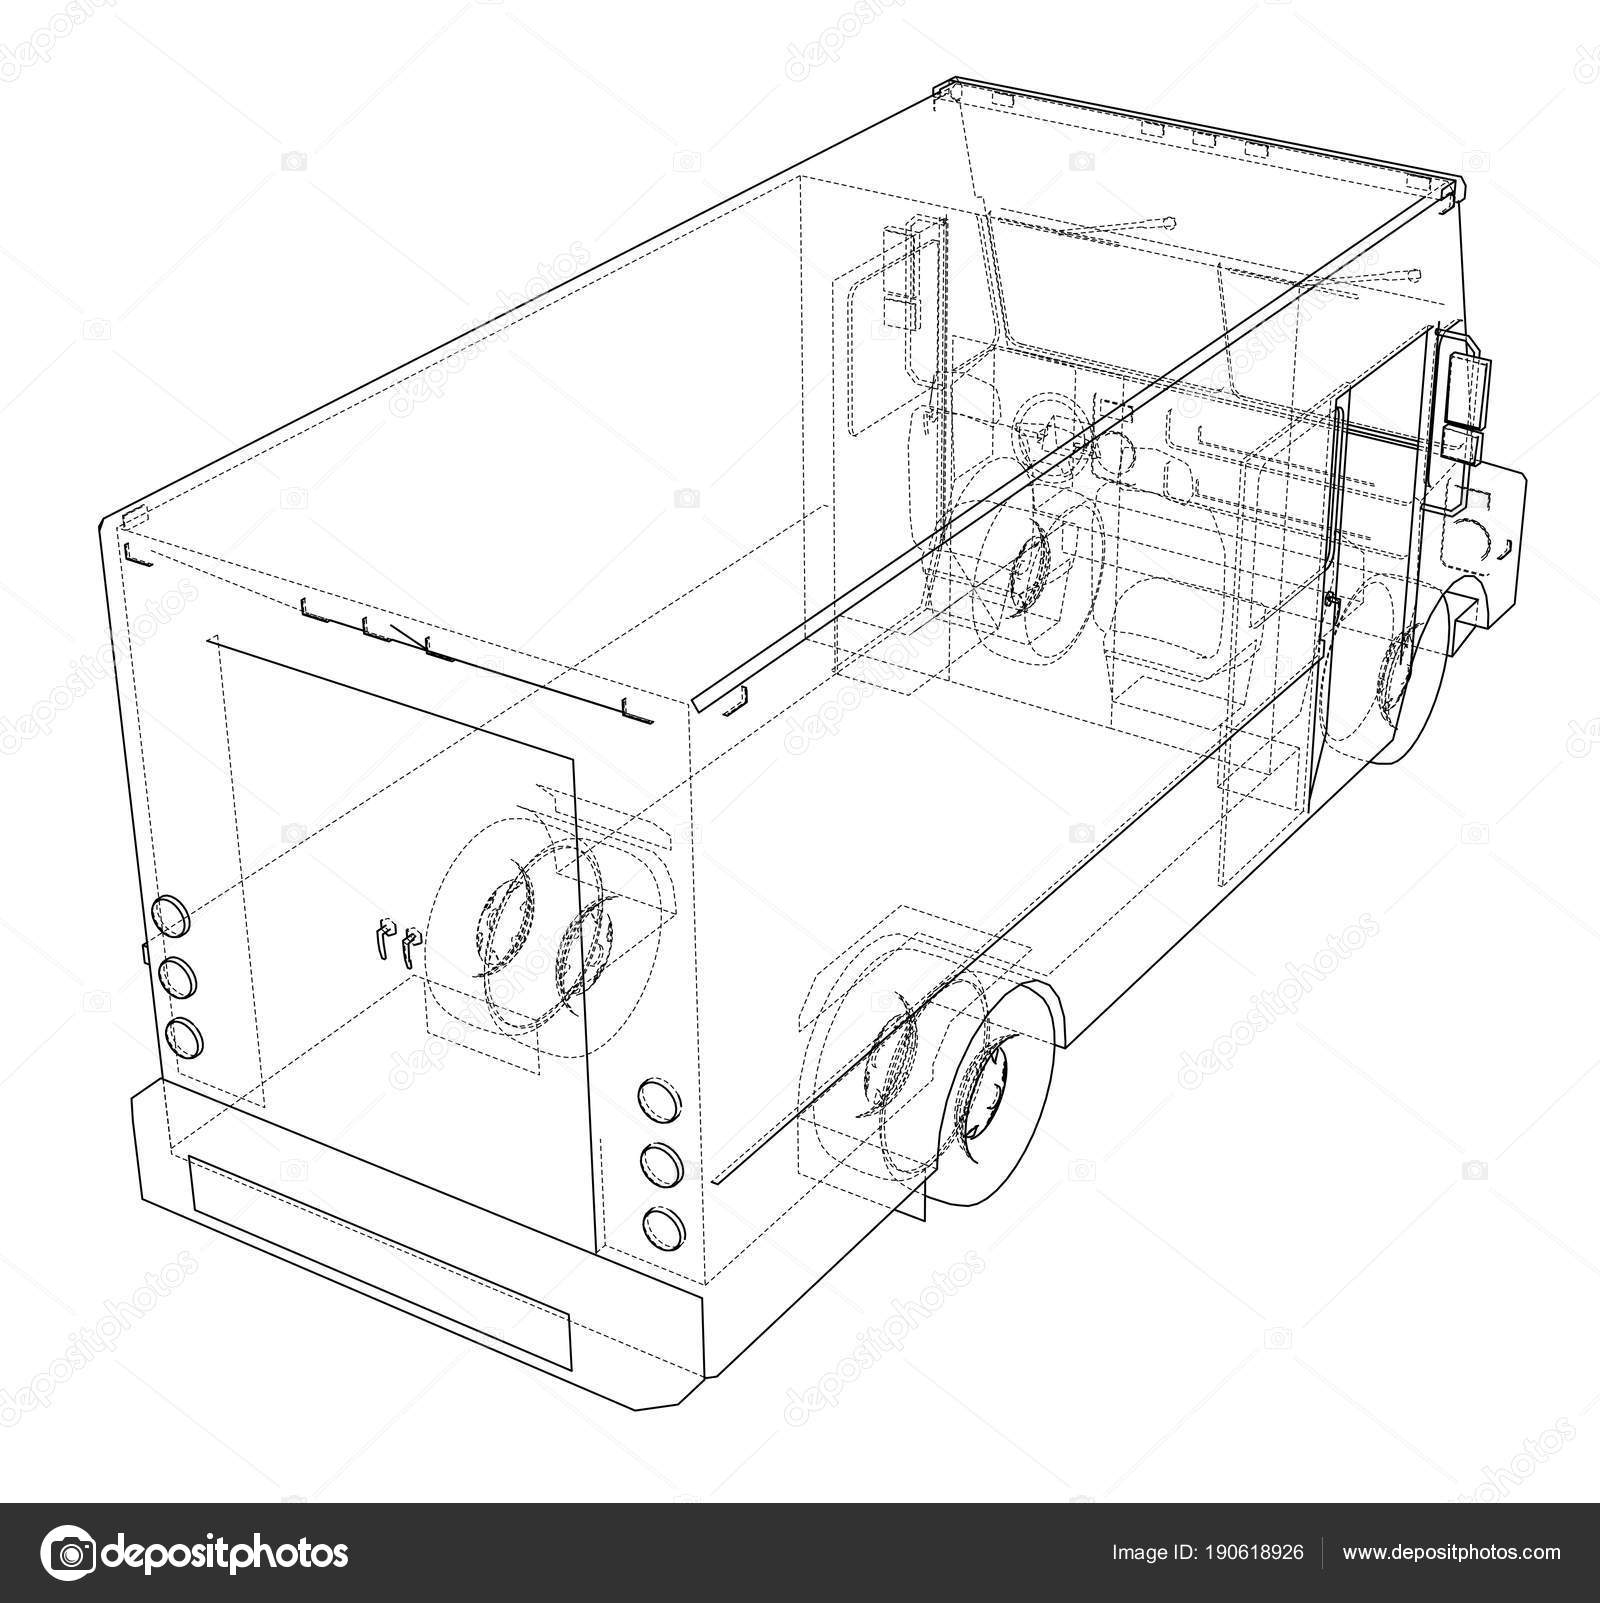 hight resolution of concept delivery car 3d illustration stock image